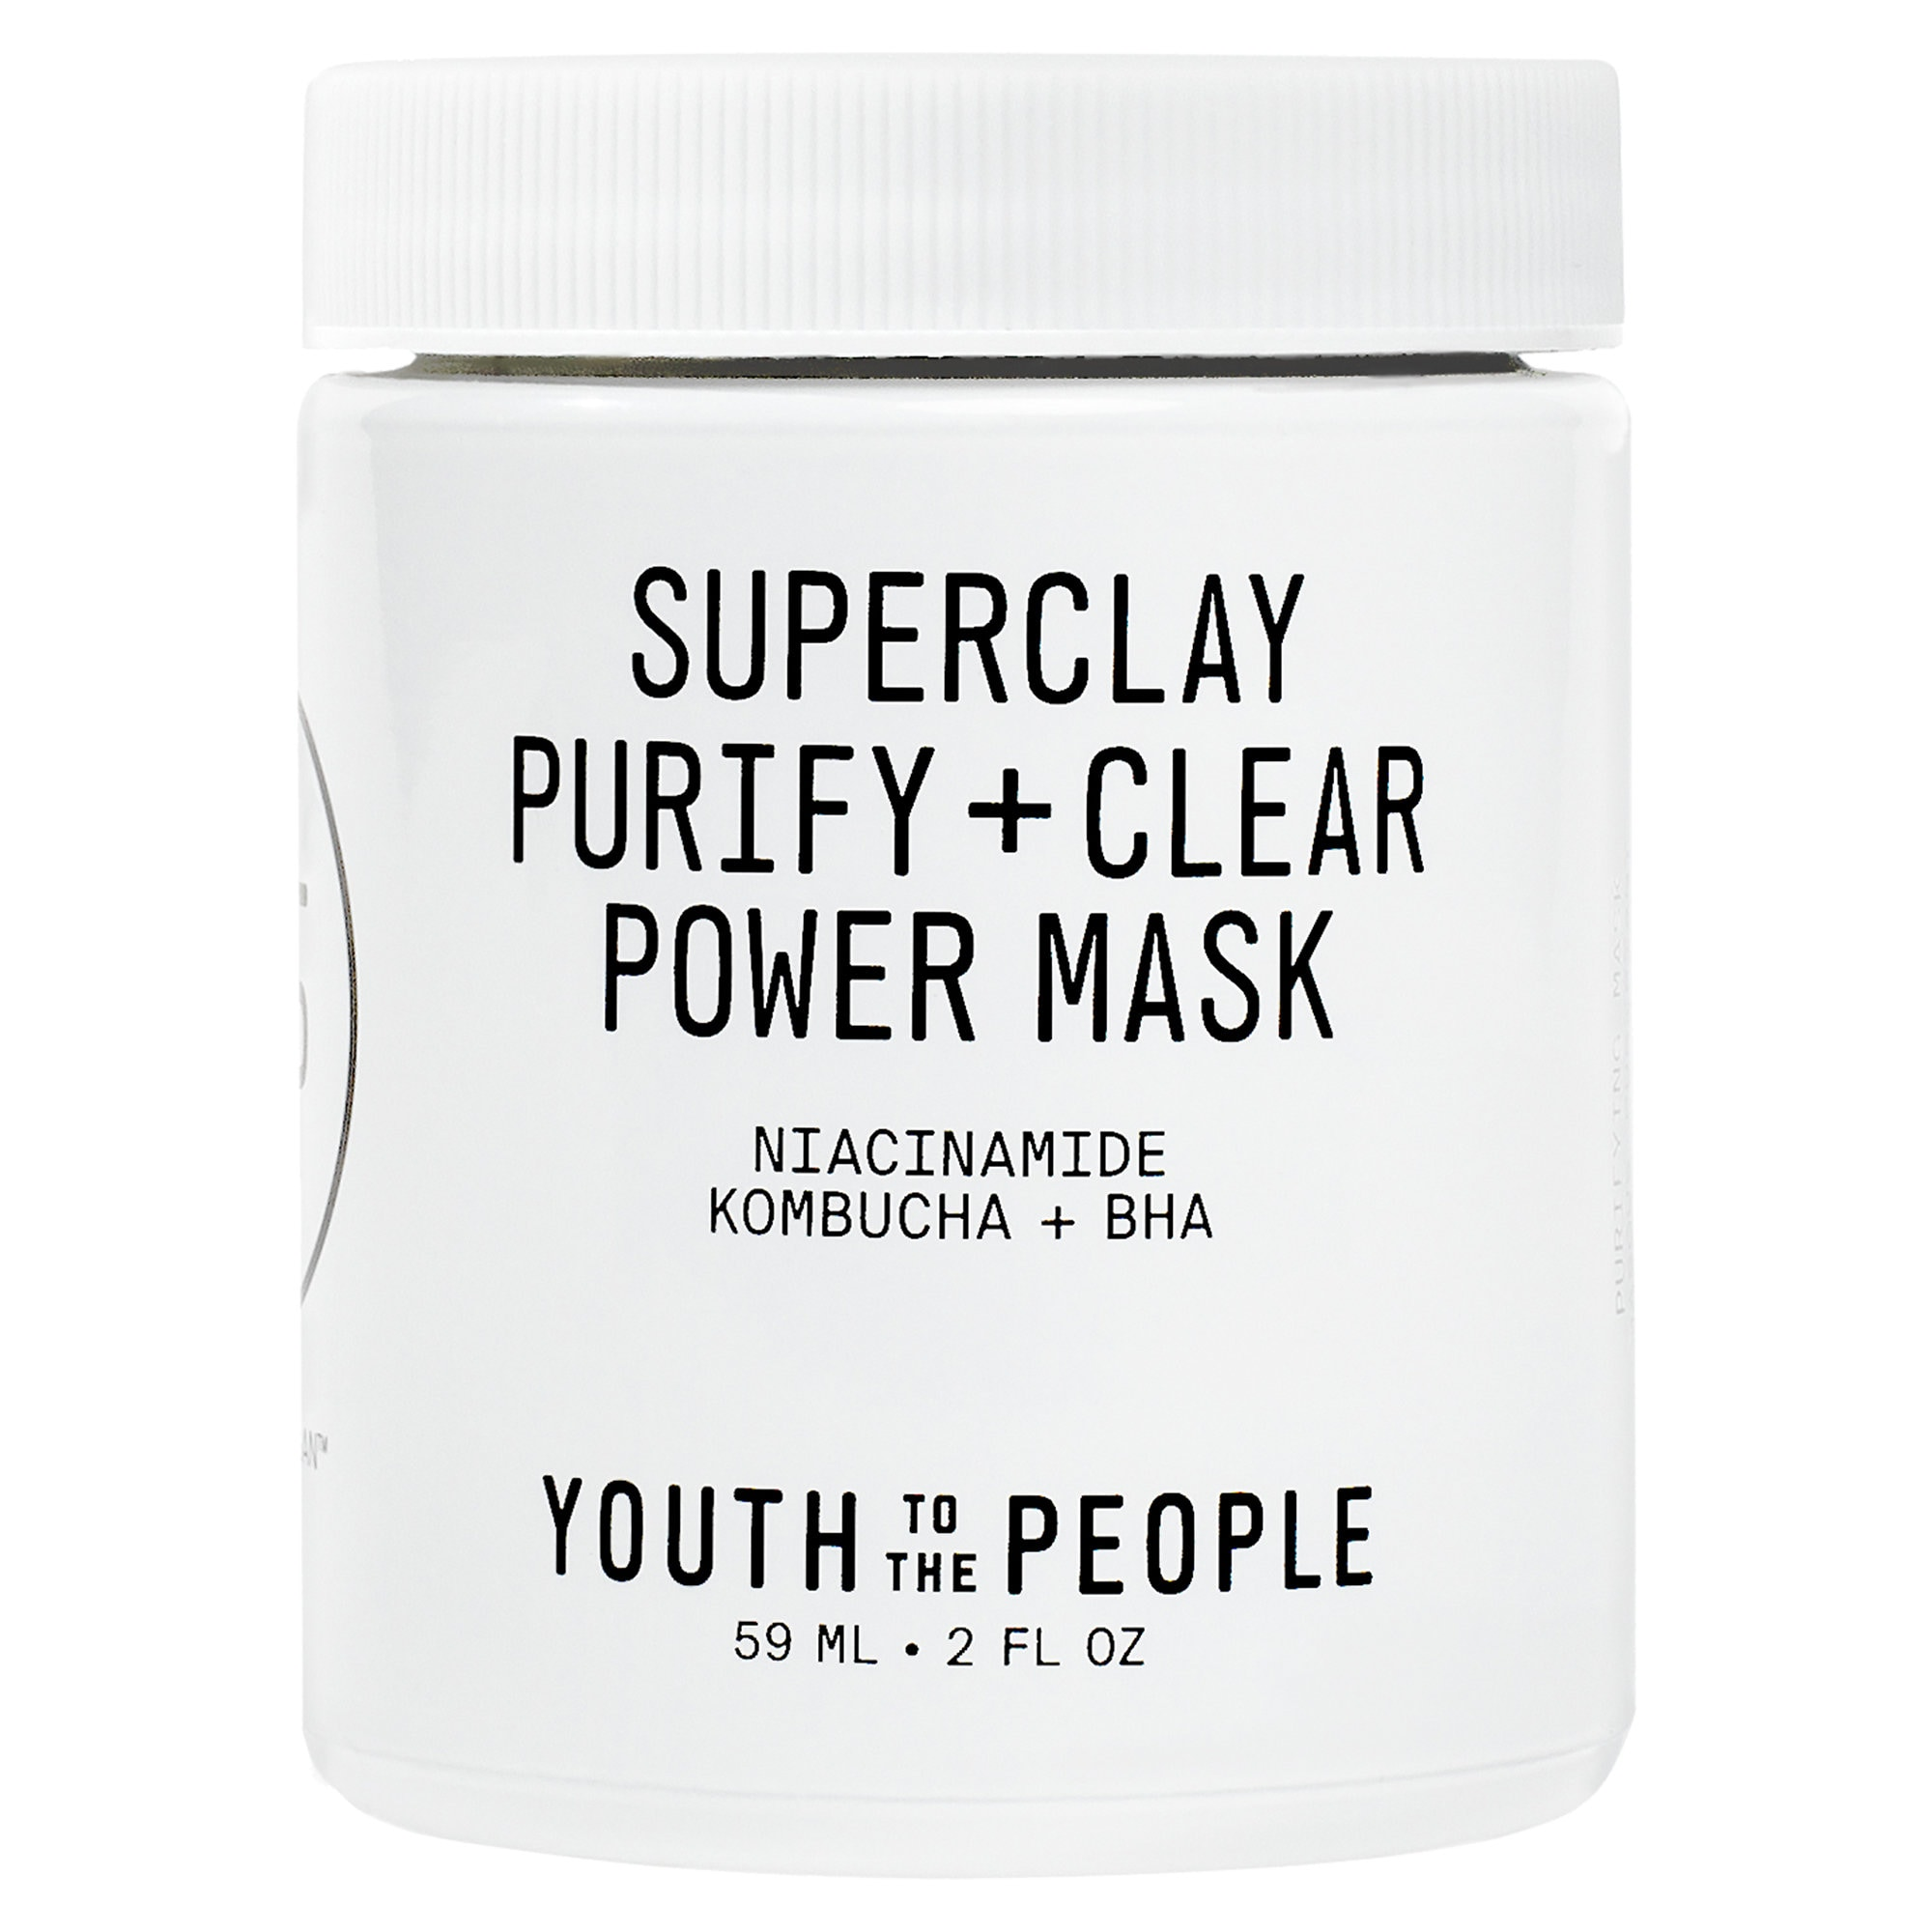 Youth to the People Superclay Purify + Clear Power Mask with Niacinamide